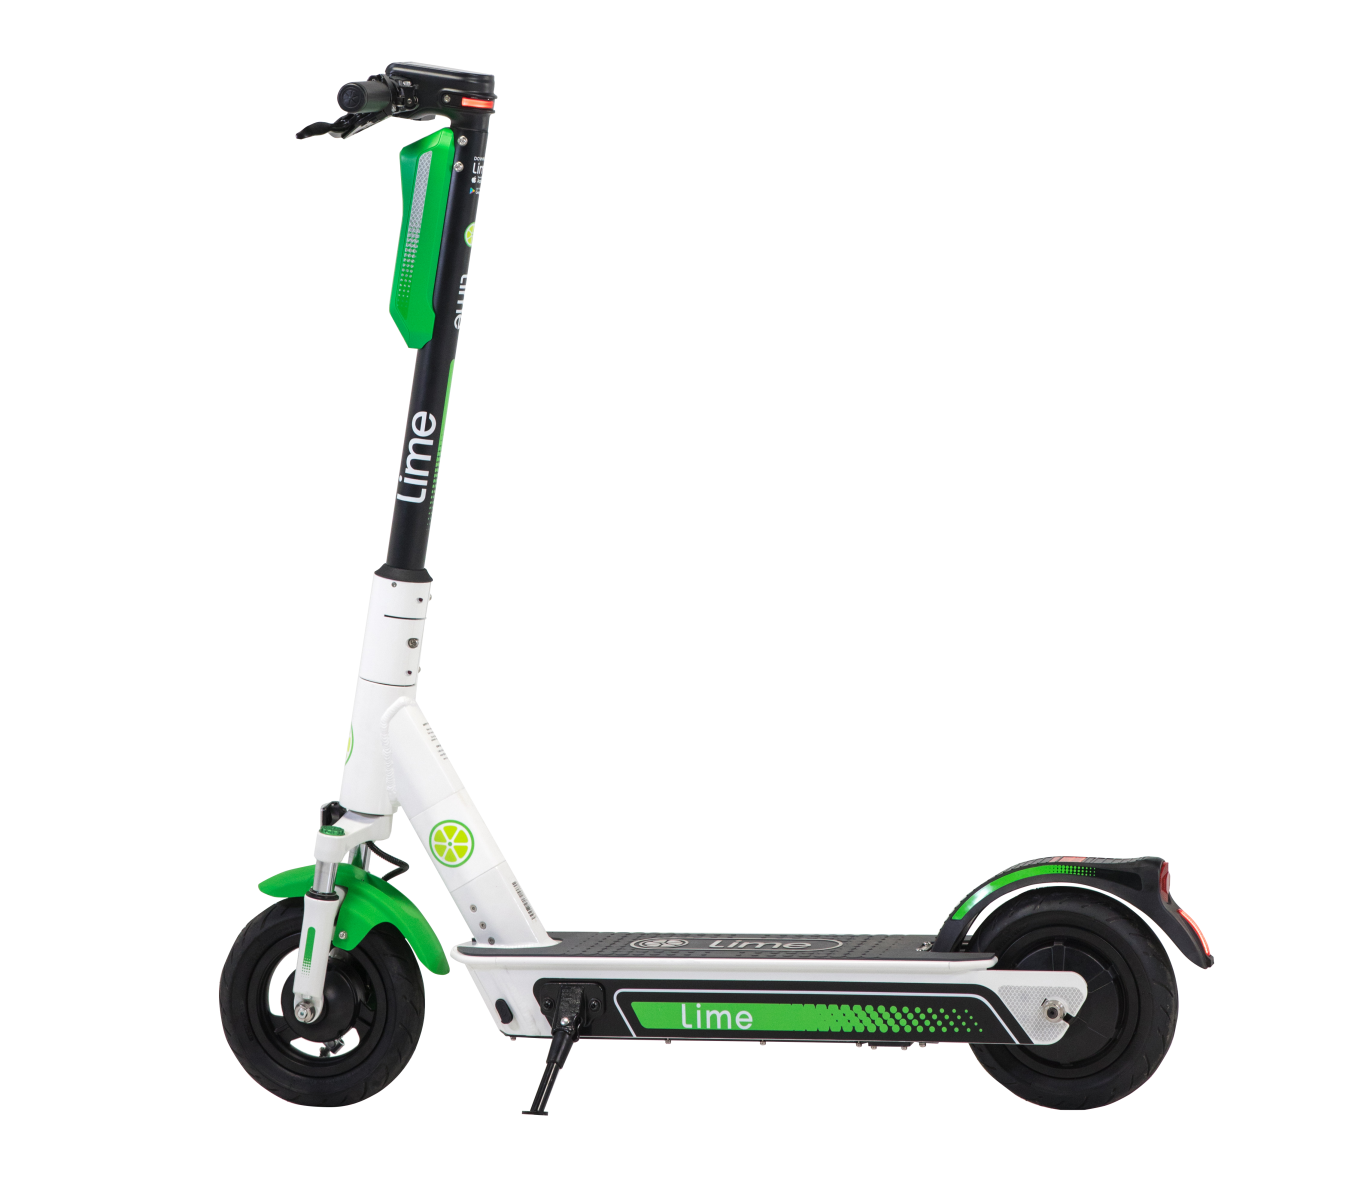 Lime Gen 3 Scooter